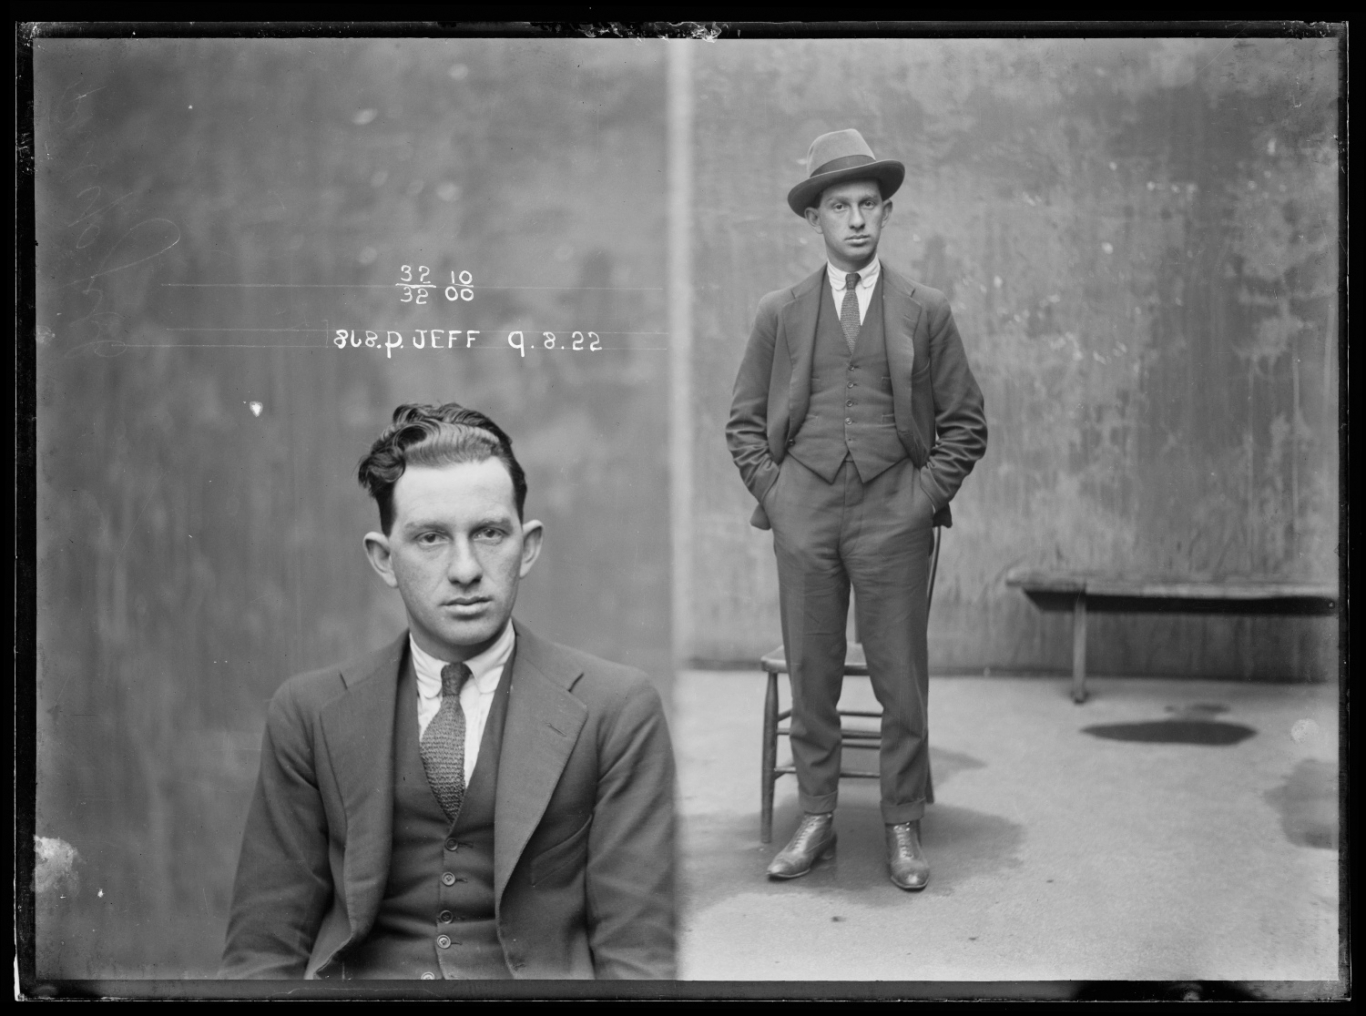 Black and white dual mugshot of man seated with hat off (left) and standing with hat on (right). Text inscribed onto image.